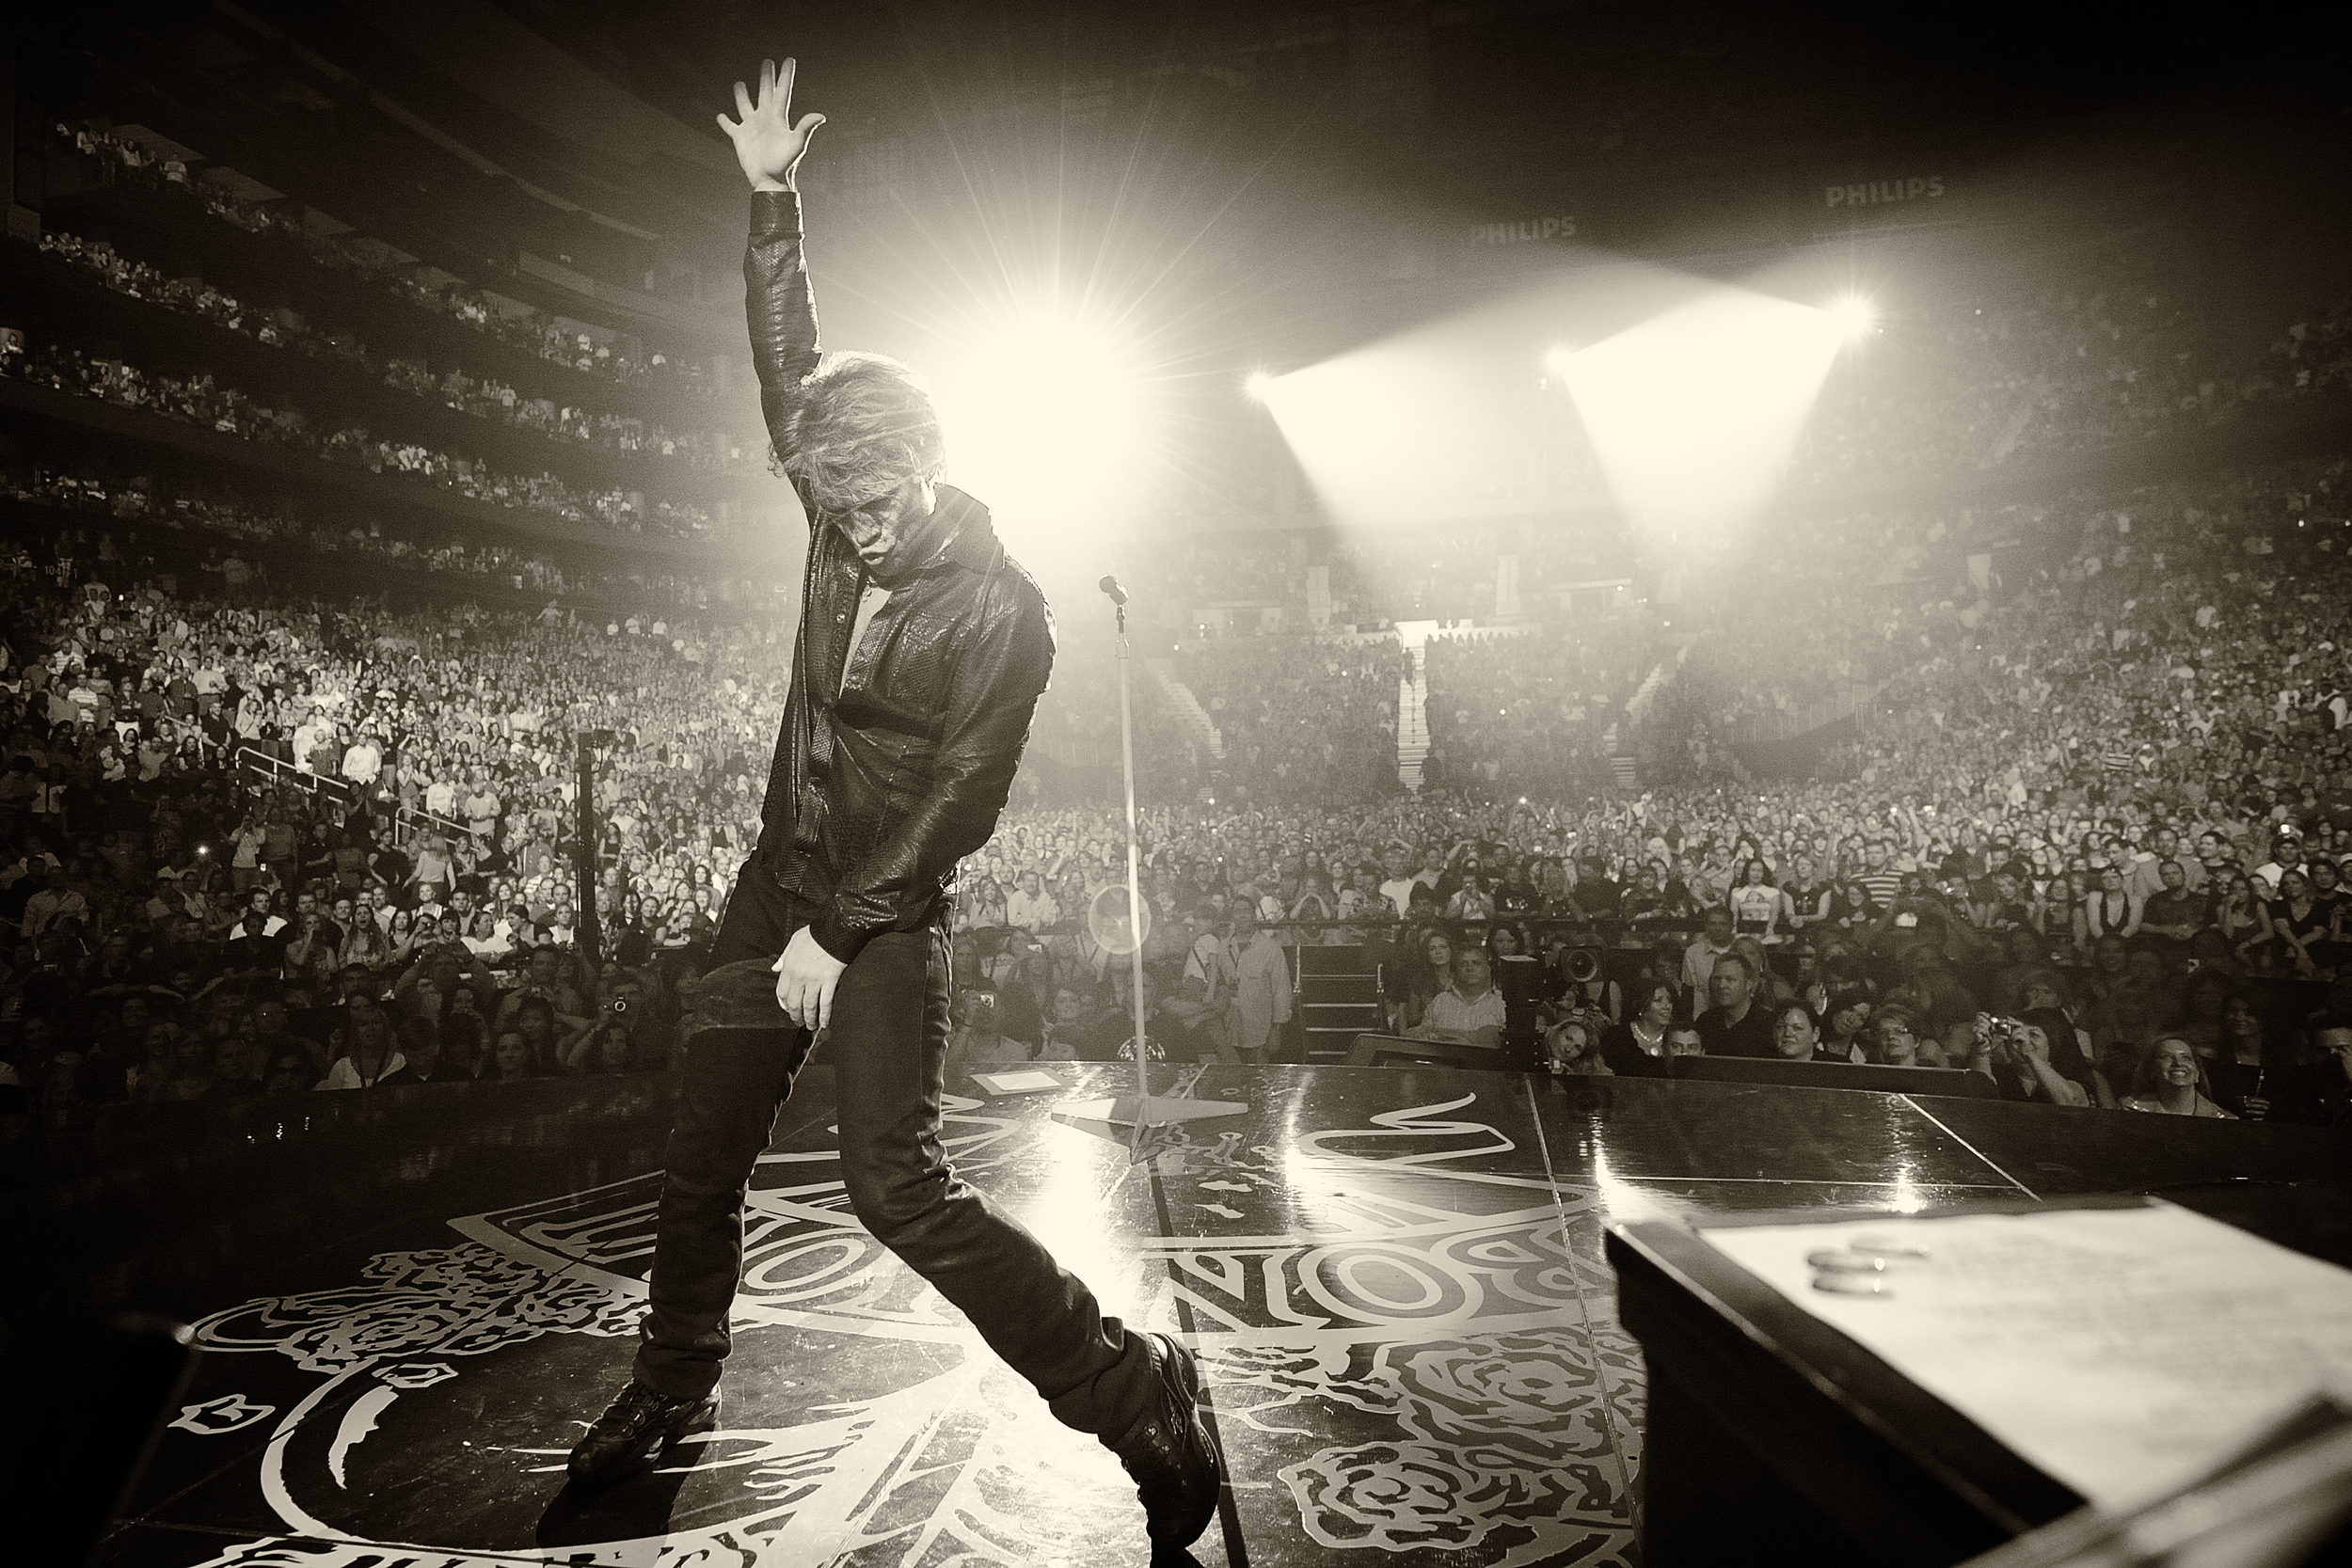 Jon Bon Jovi in concert in Atlanta. April 15, 2010 © David Bergman